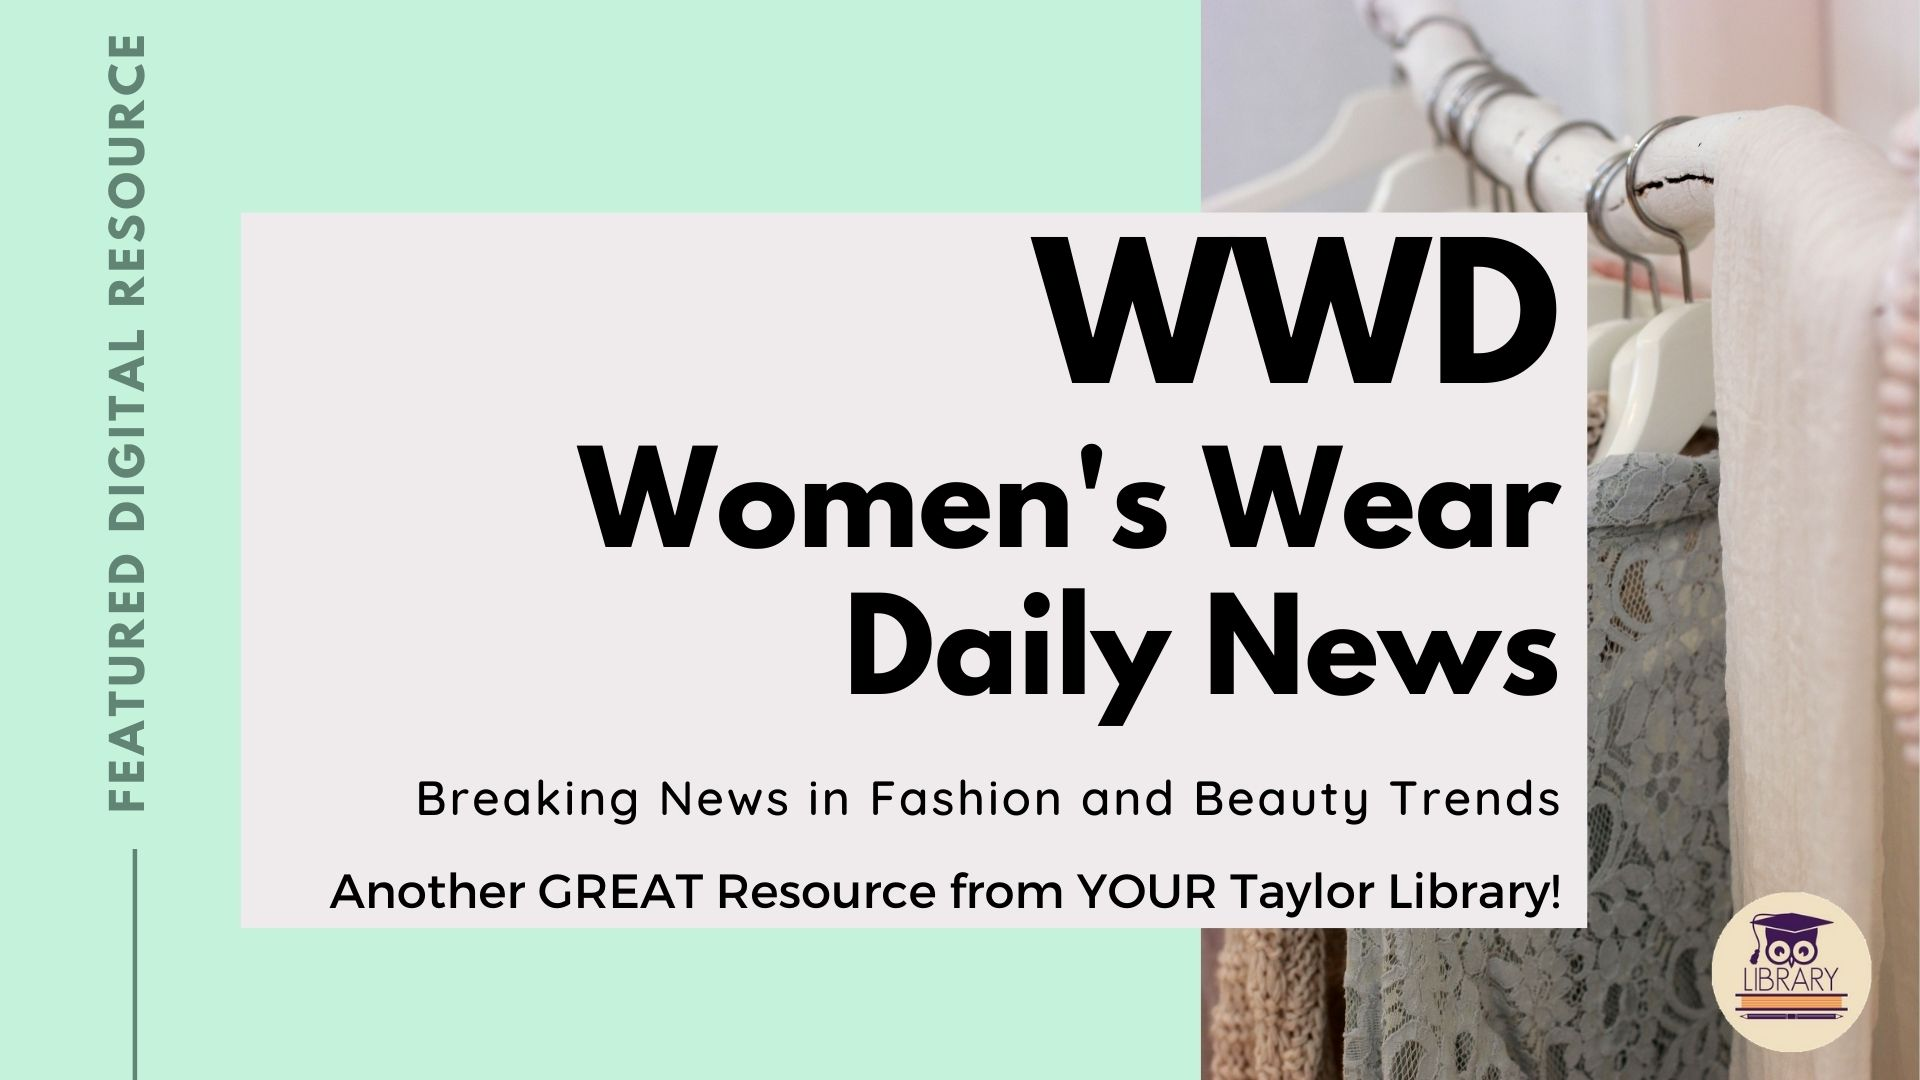 Women's Wear Daily news keeps you up to date with fashion trends